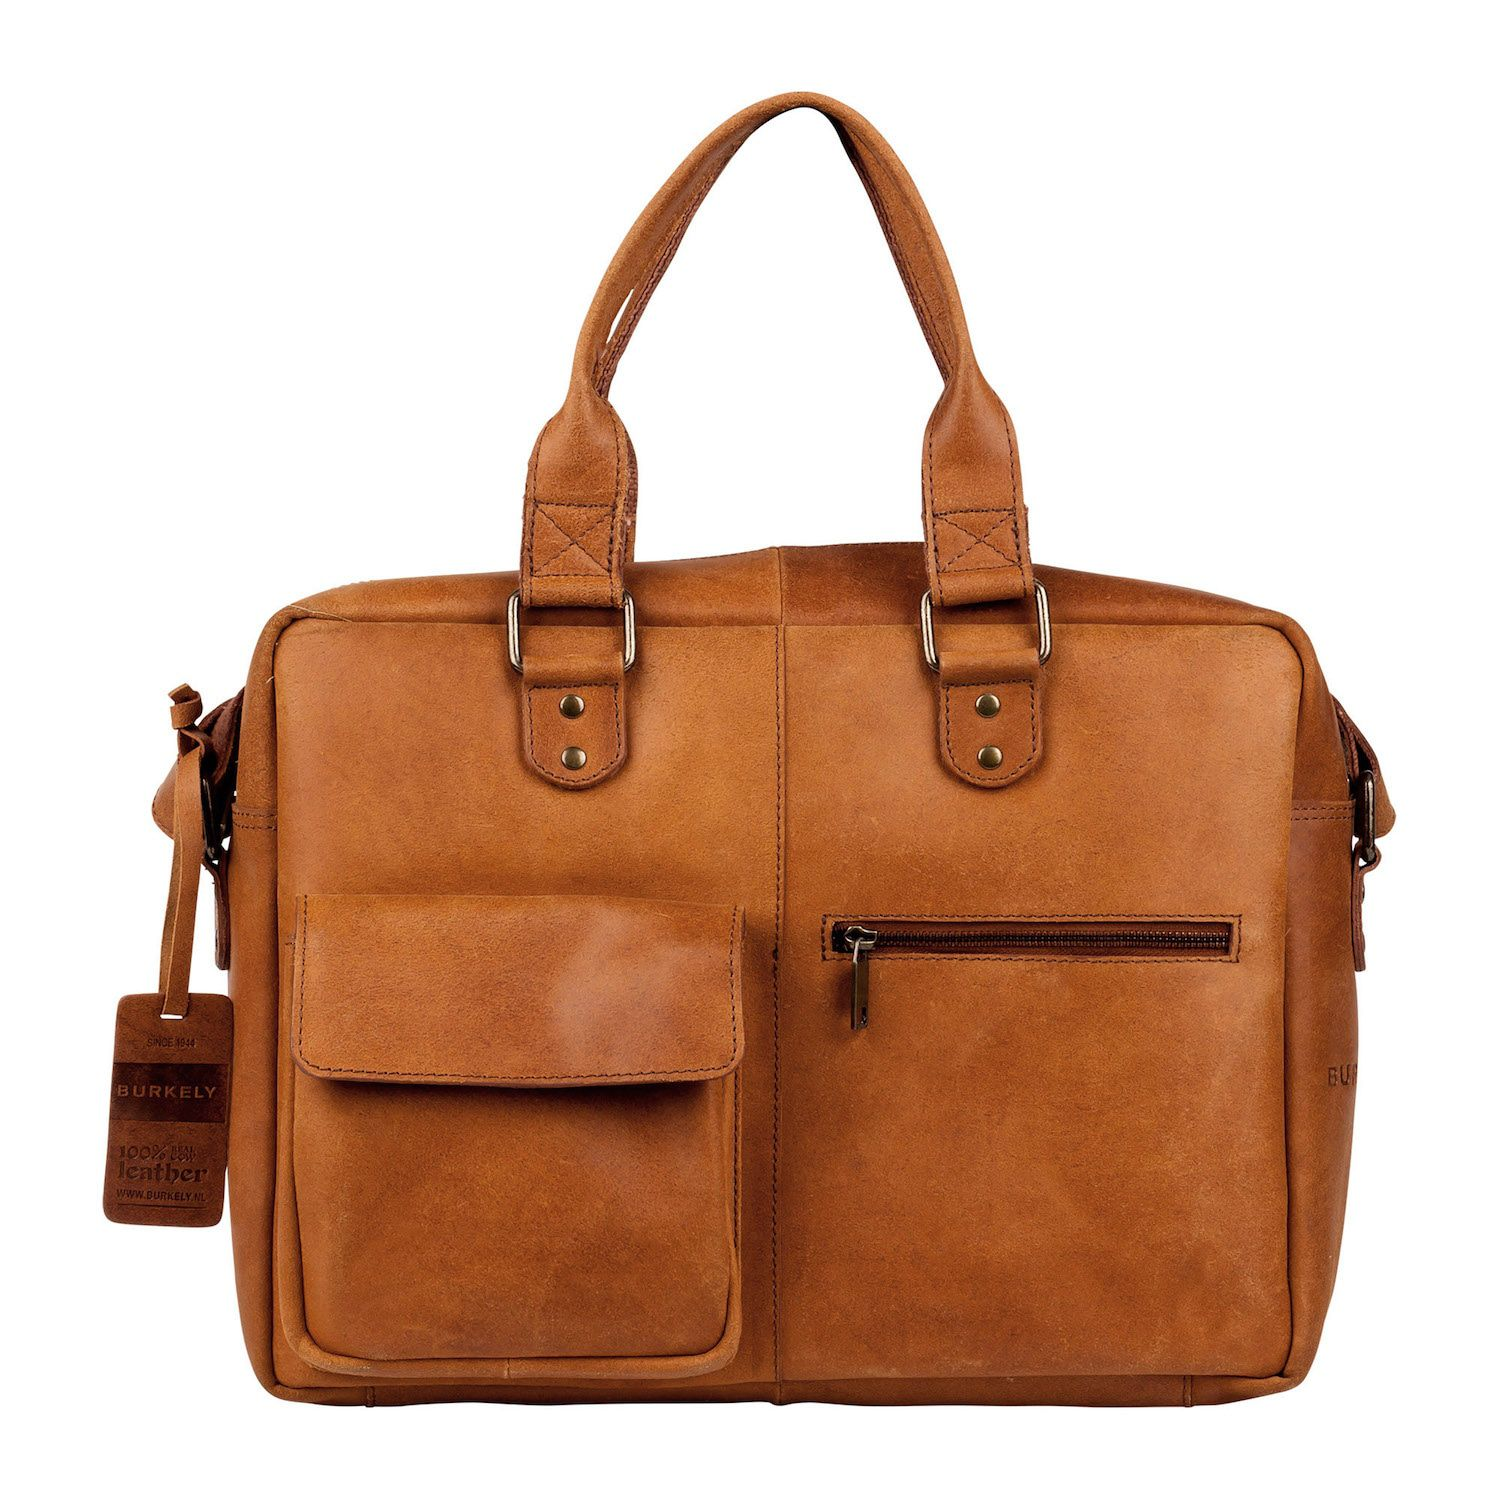 Laptoptas Burkely Quinn Vintage Business Shoulderbag Cognac 14 inch